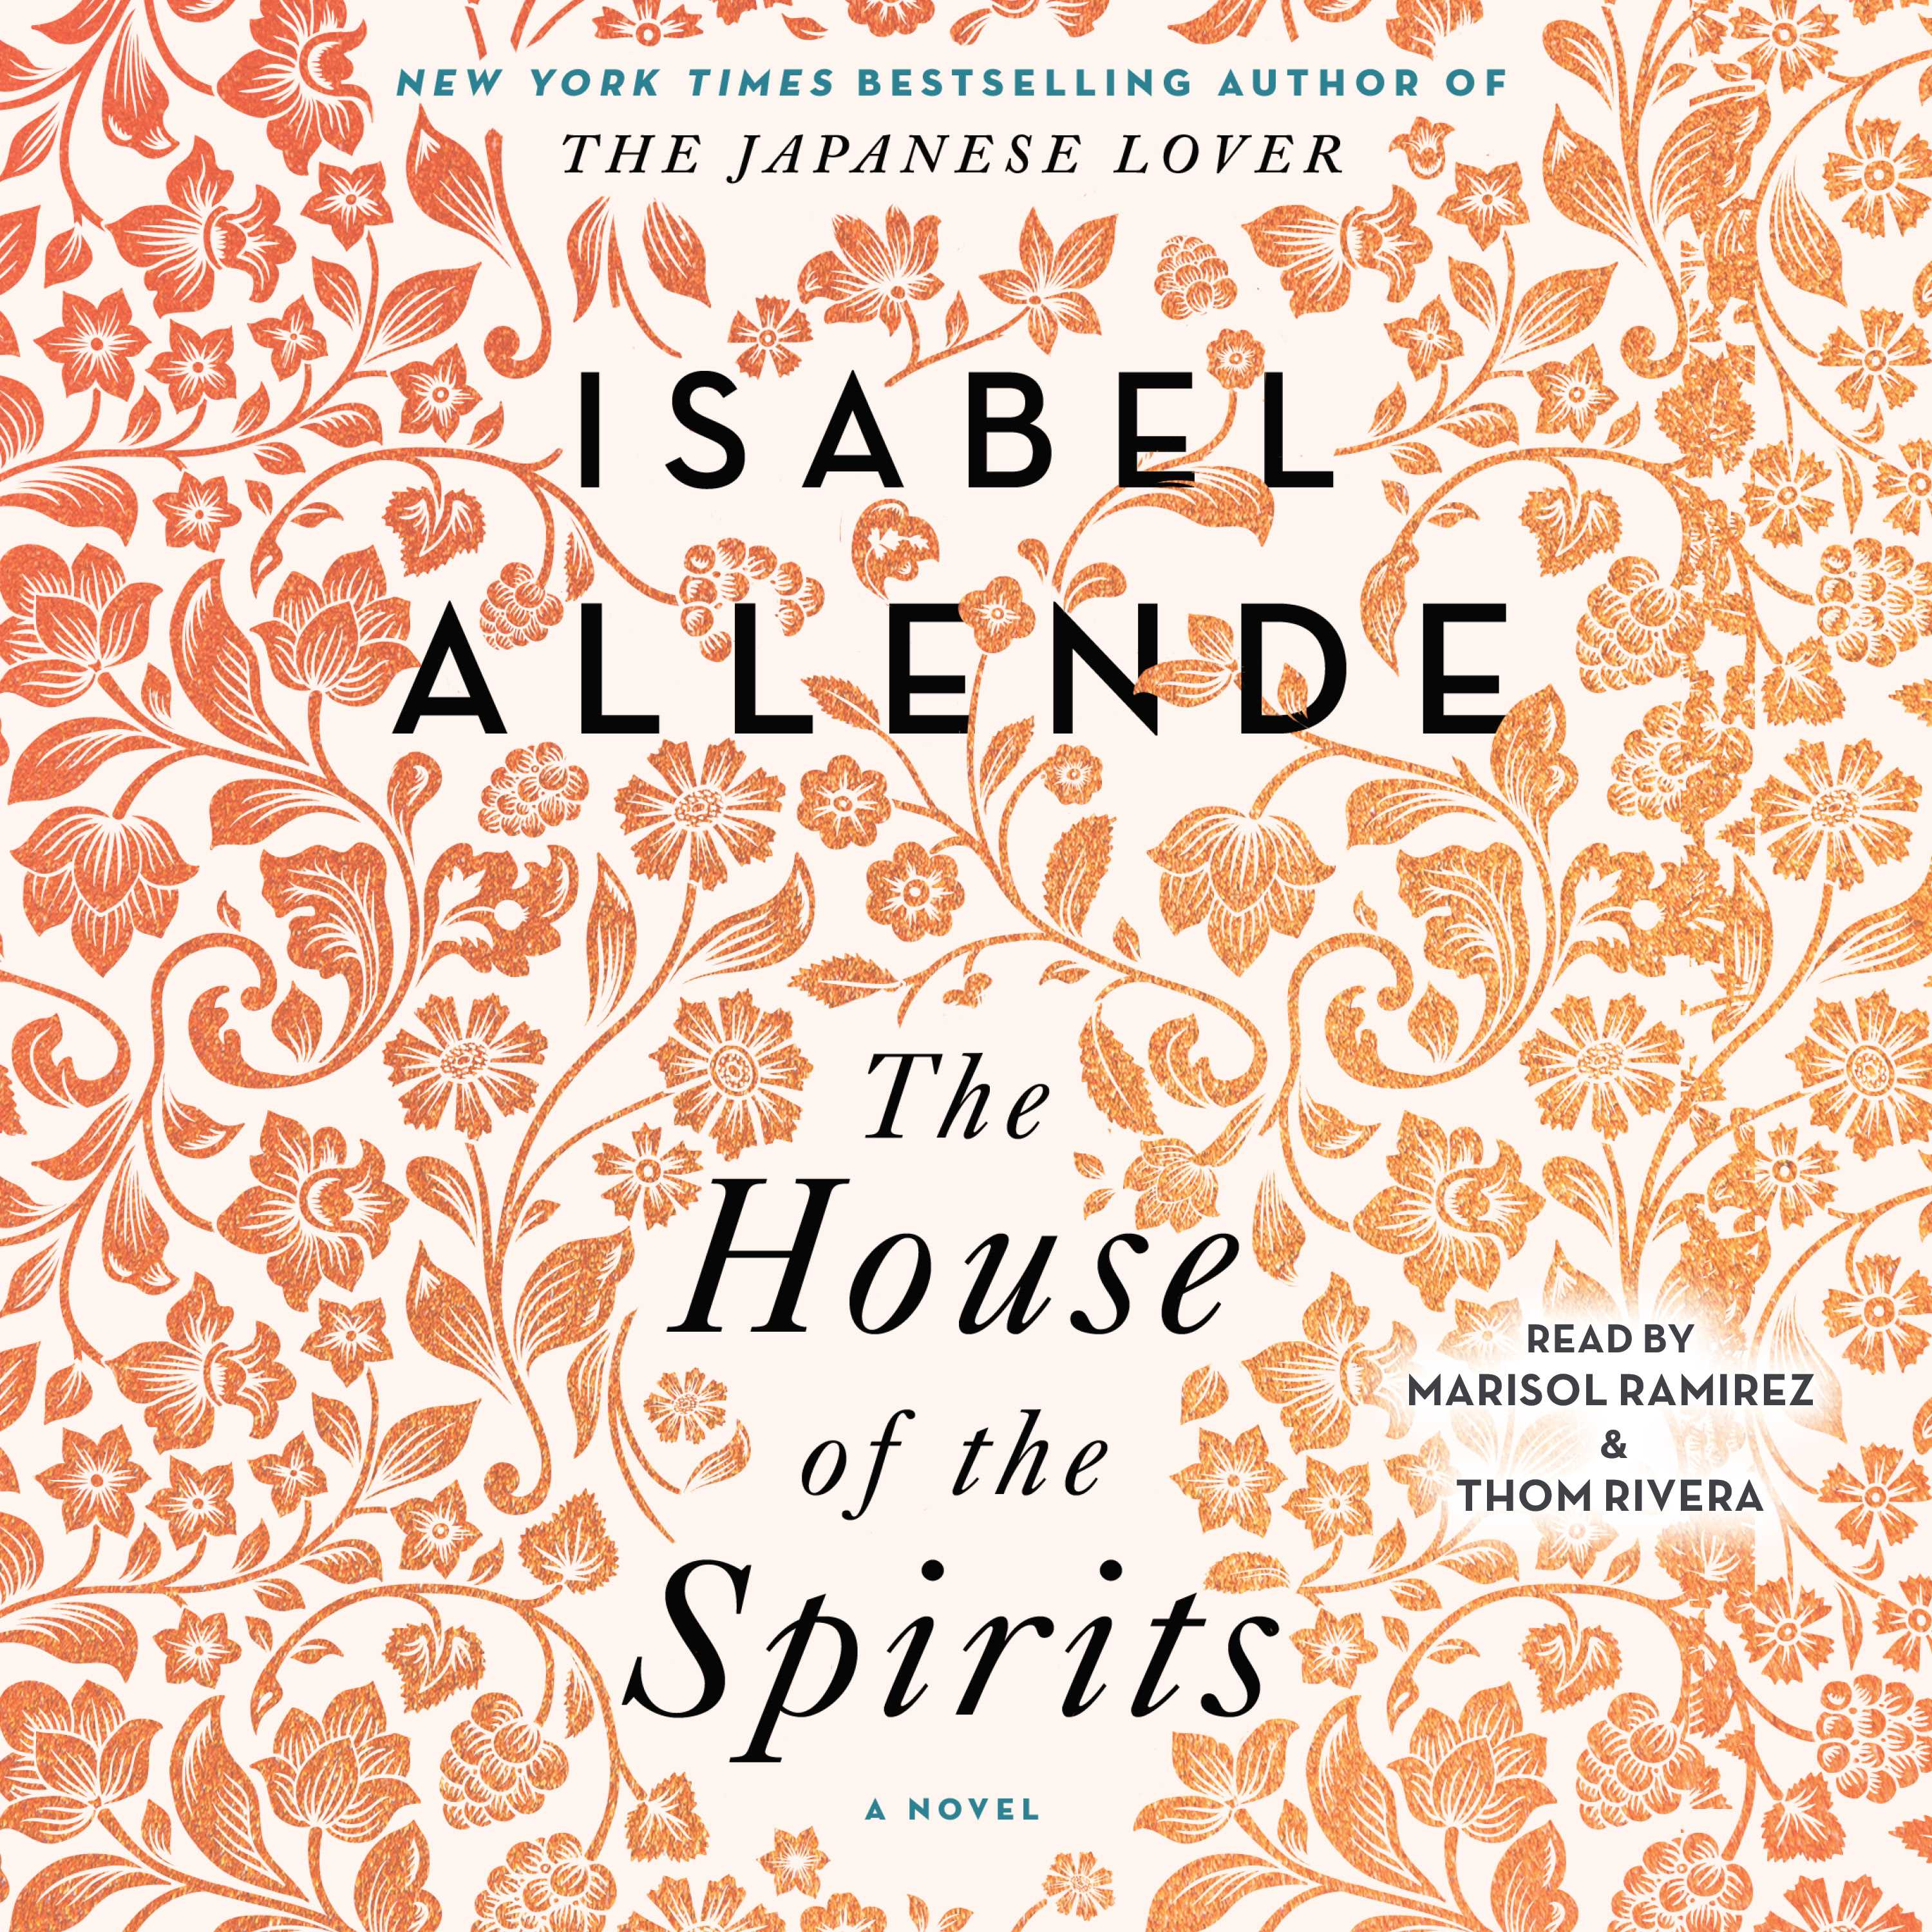 an analysis of unforgiving realities in the novel the house of the spirits by isabel allende Invokes alejo carpentier's explanation of magical realism to define both the novel and the paintings 47 48 of love and s hadow a introduction of love and shadow, isabel allende's second novel, continues many of the themes of the house of the spirits.